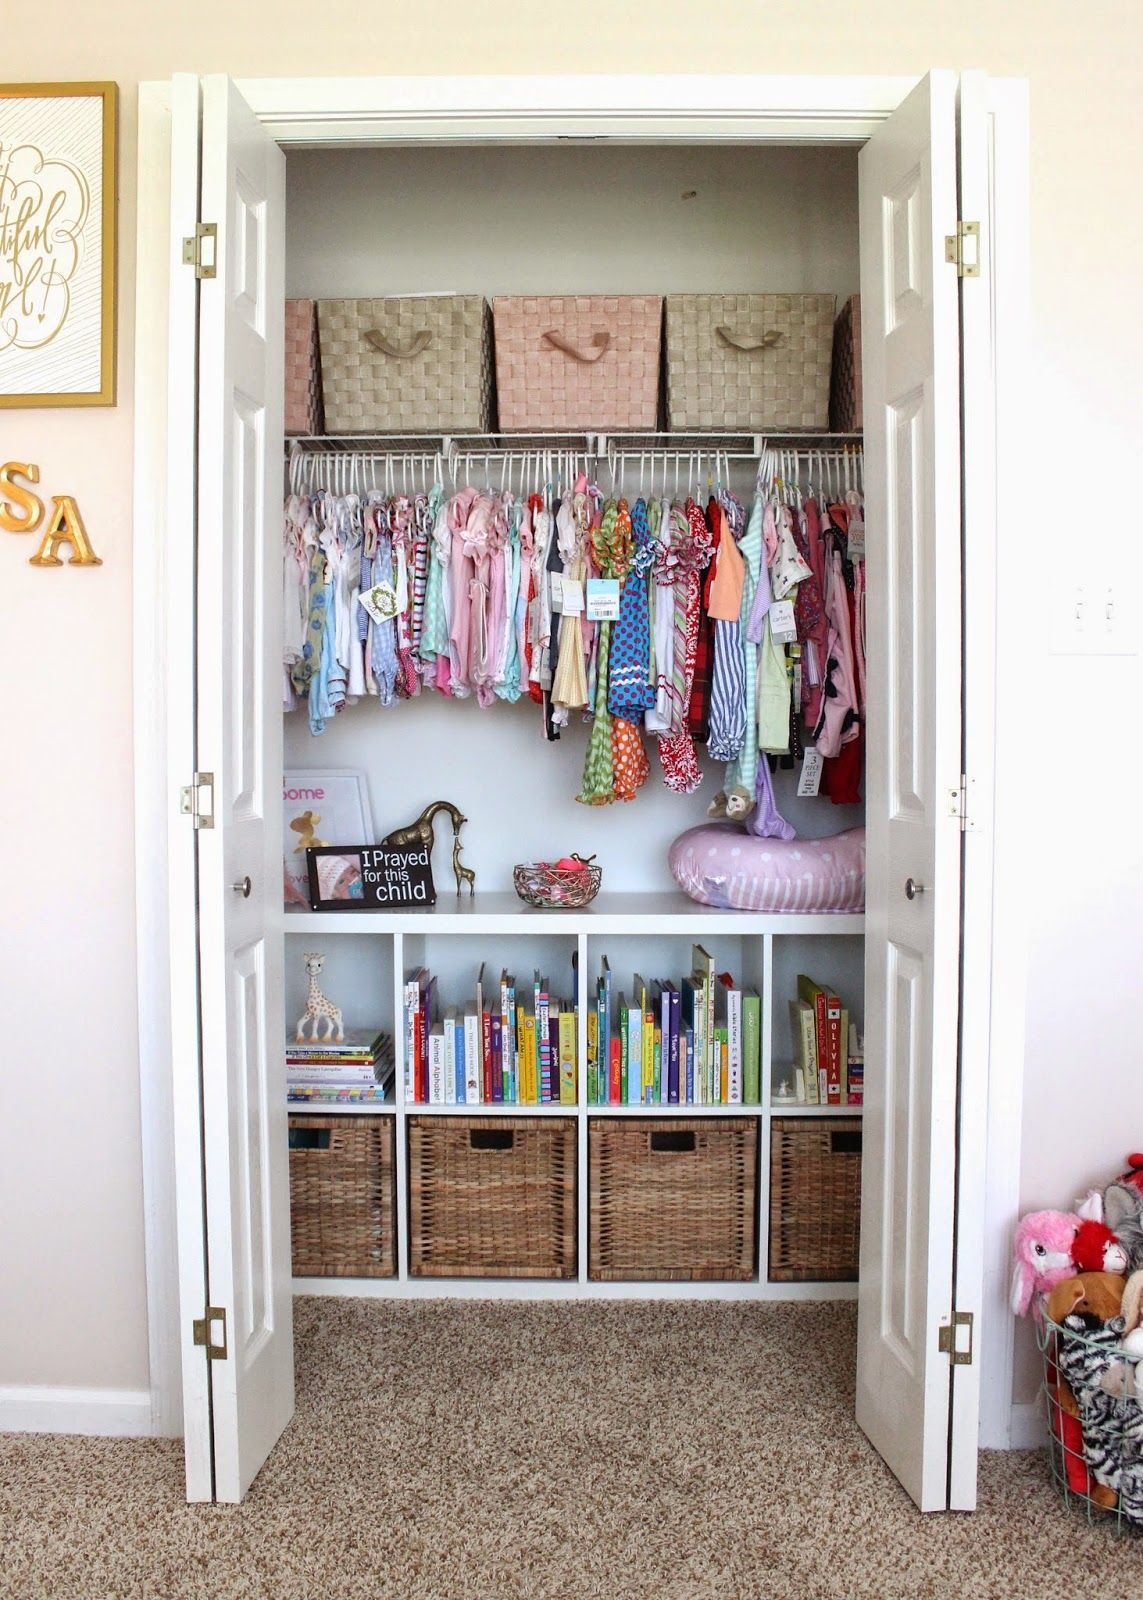 Are You Looking For Some Fantastic Ideas Organizing Kid S Bedrooms From Closet Organization To Under Bed Storage Book And Work Areas